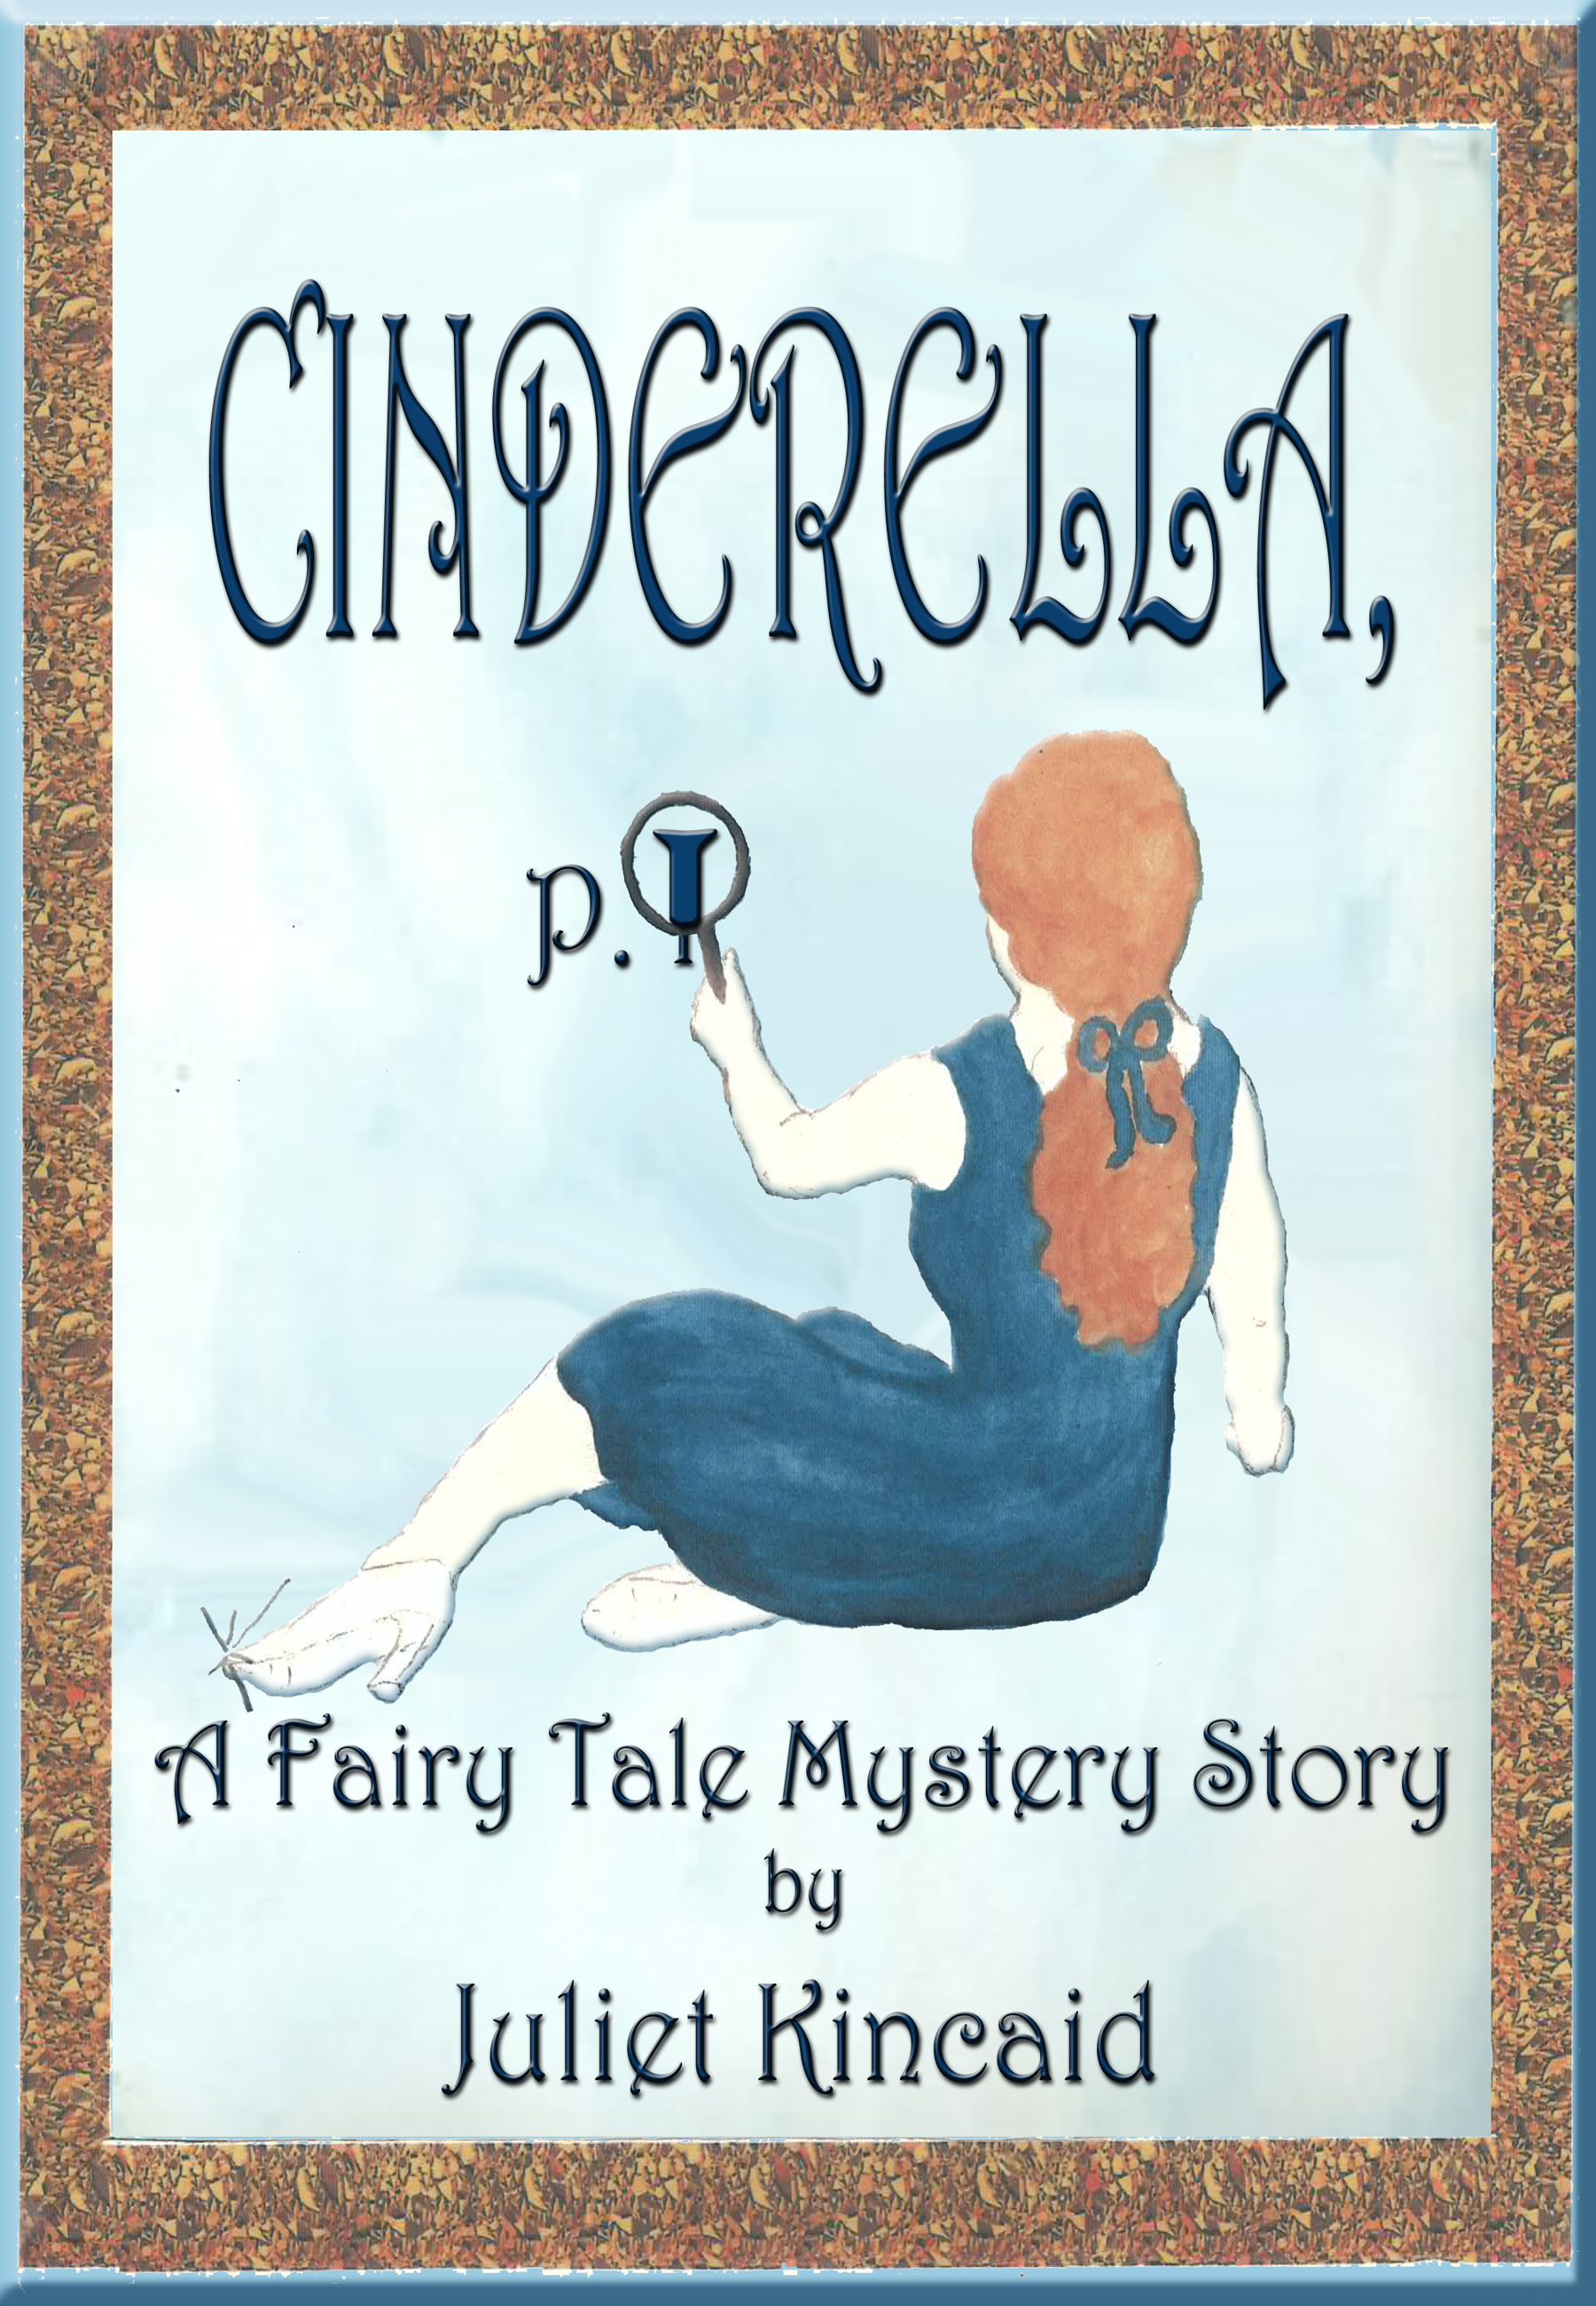 comparison essay cinderella